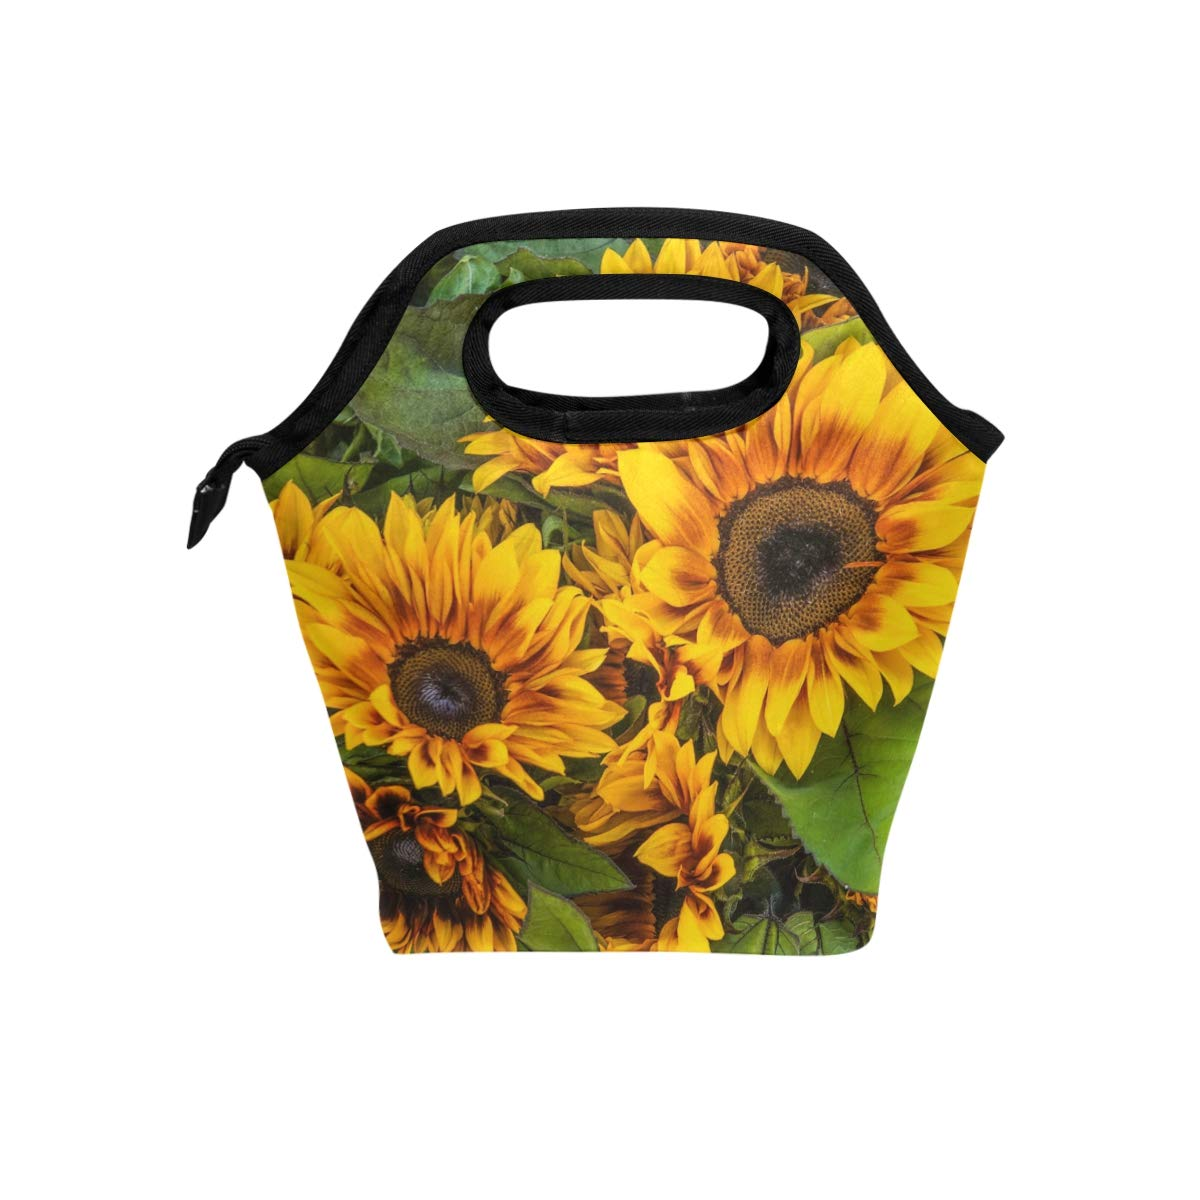 Naanle Floral Flower Insulated Zipper Lunch Bag Cooler Tote Bag for Adult Teens Kids Girls Boys Men Women, Sunflower Lunch Boxes Lunchboxes Meal Prep Handbag for Outdoors School Office